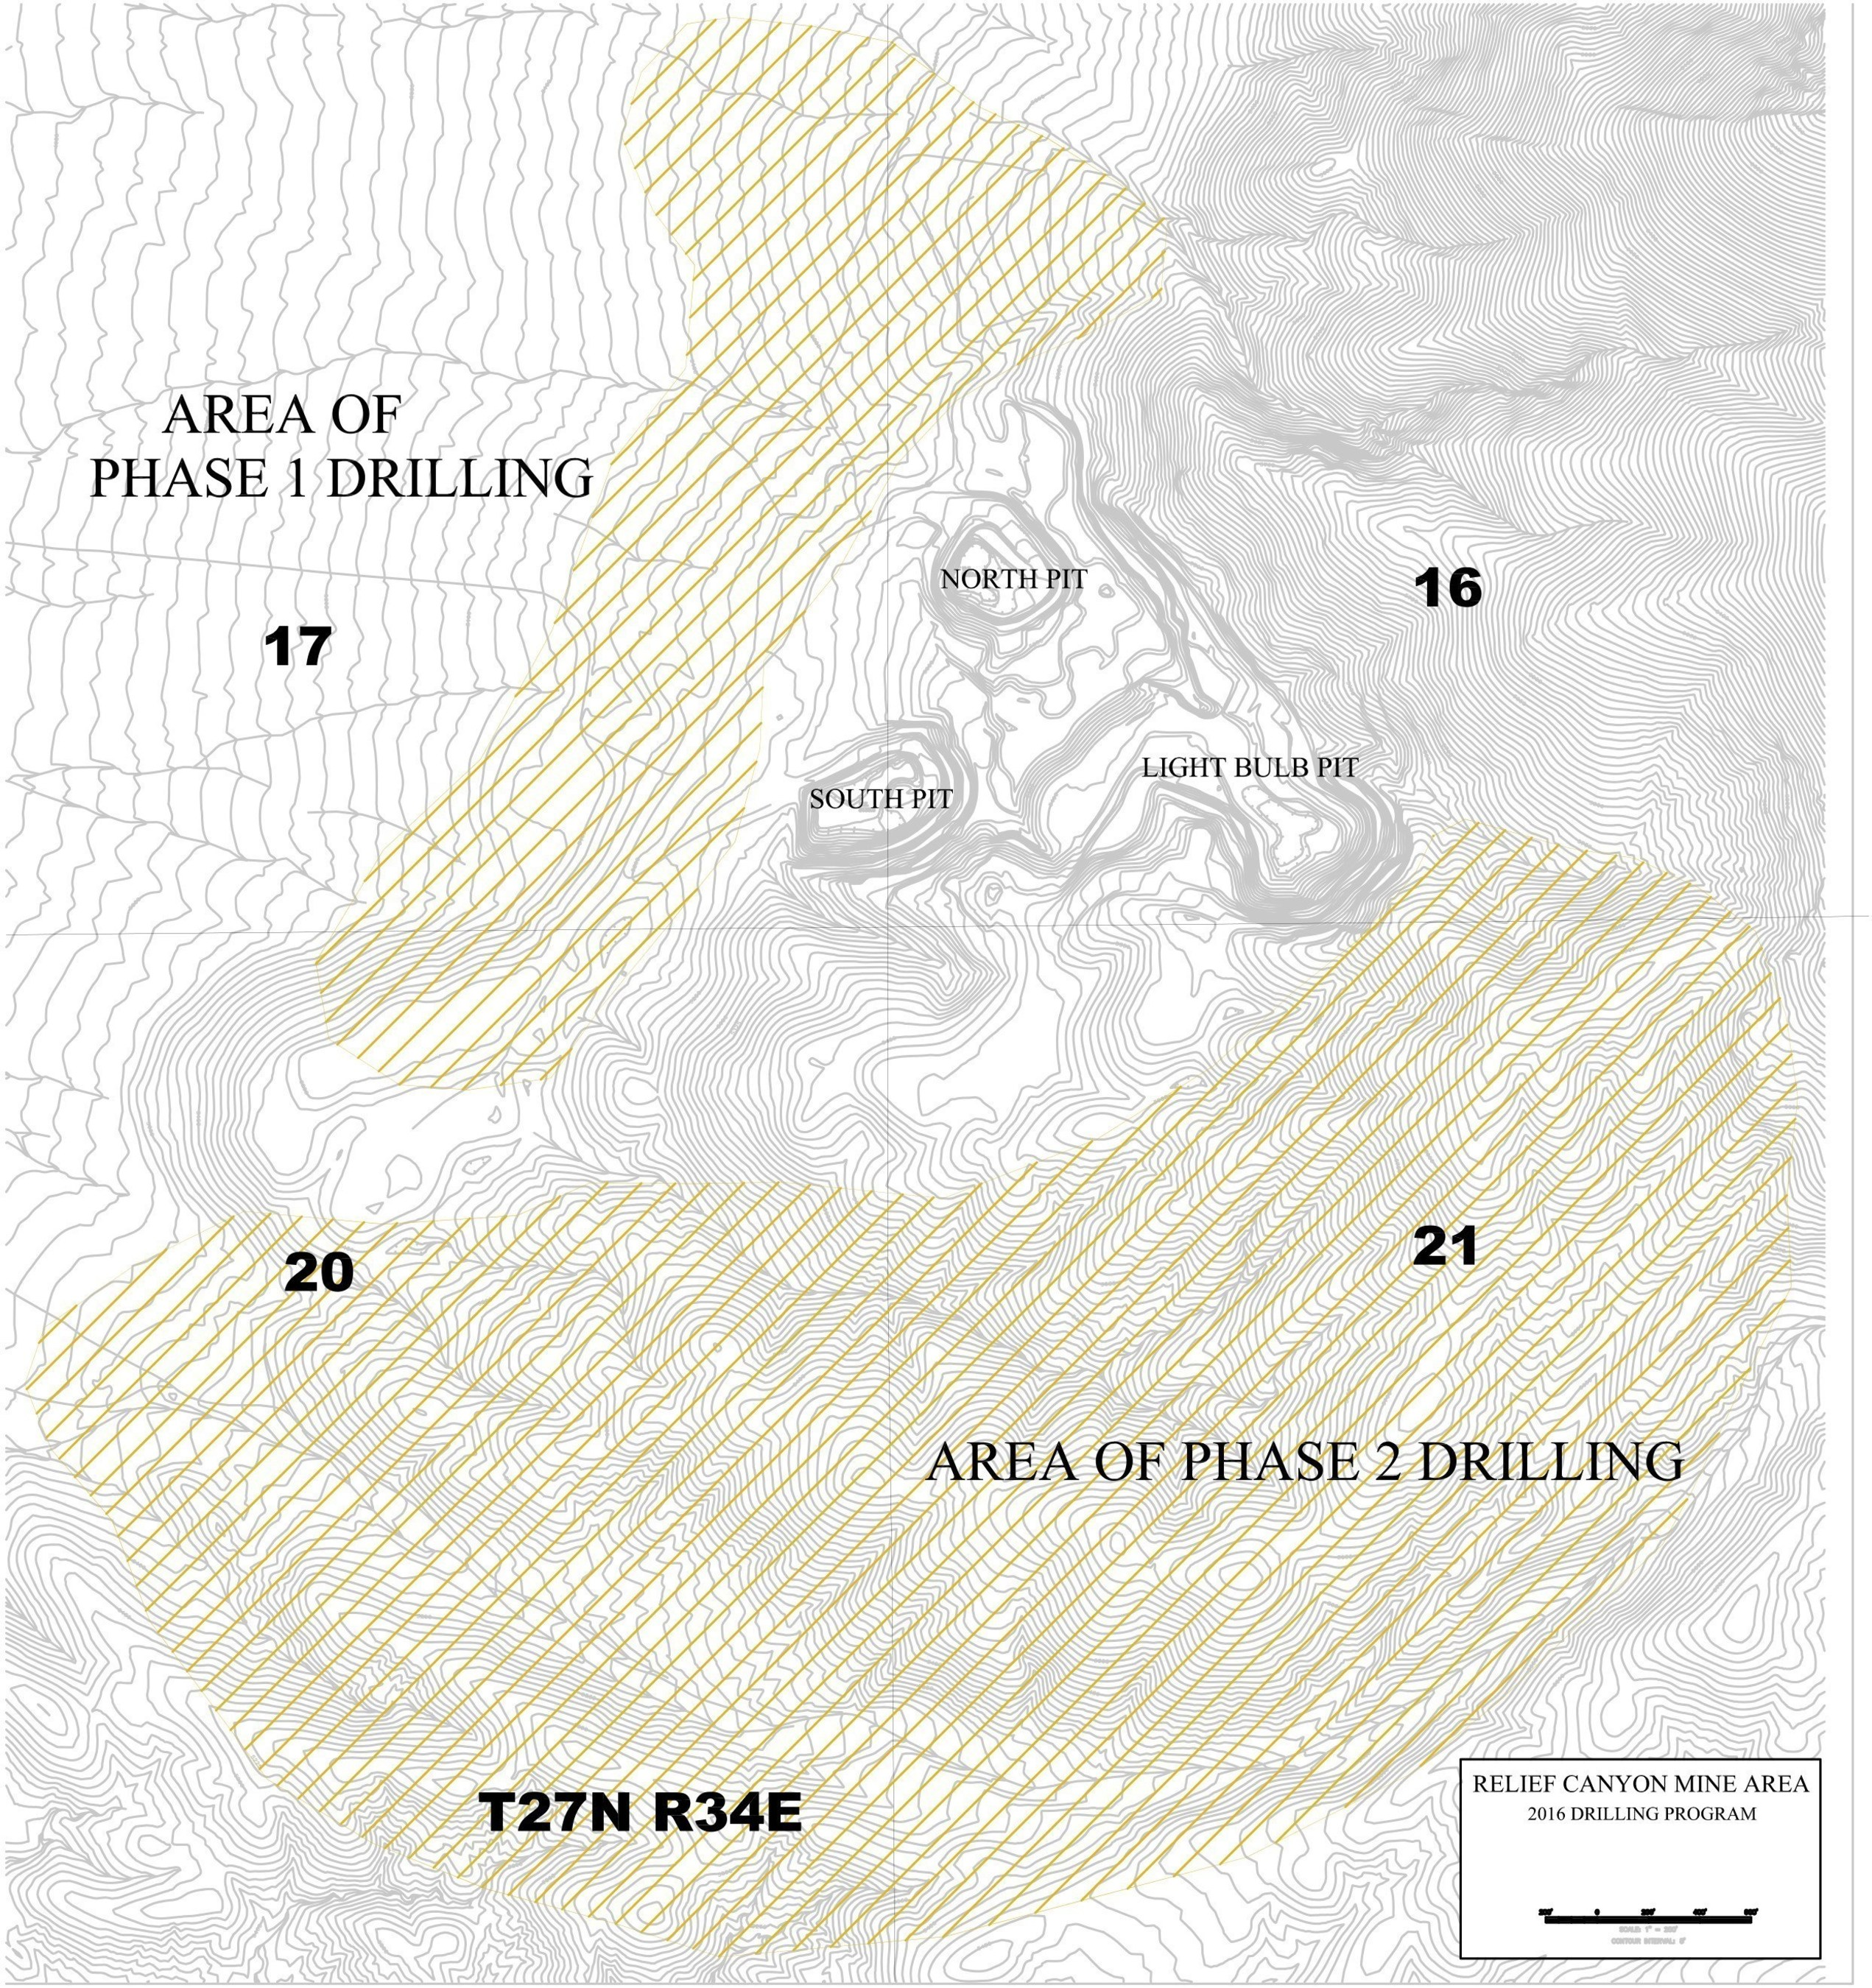 Figure 1: Phase 1 and Phase 2 Drilling Areas